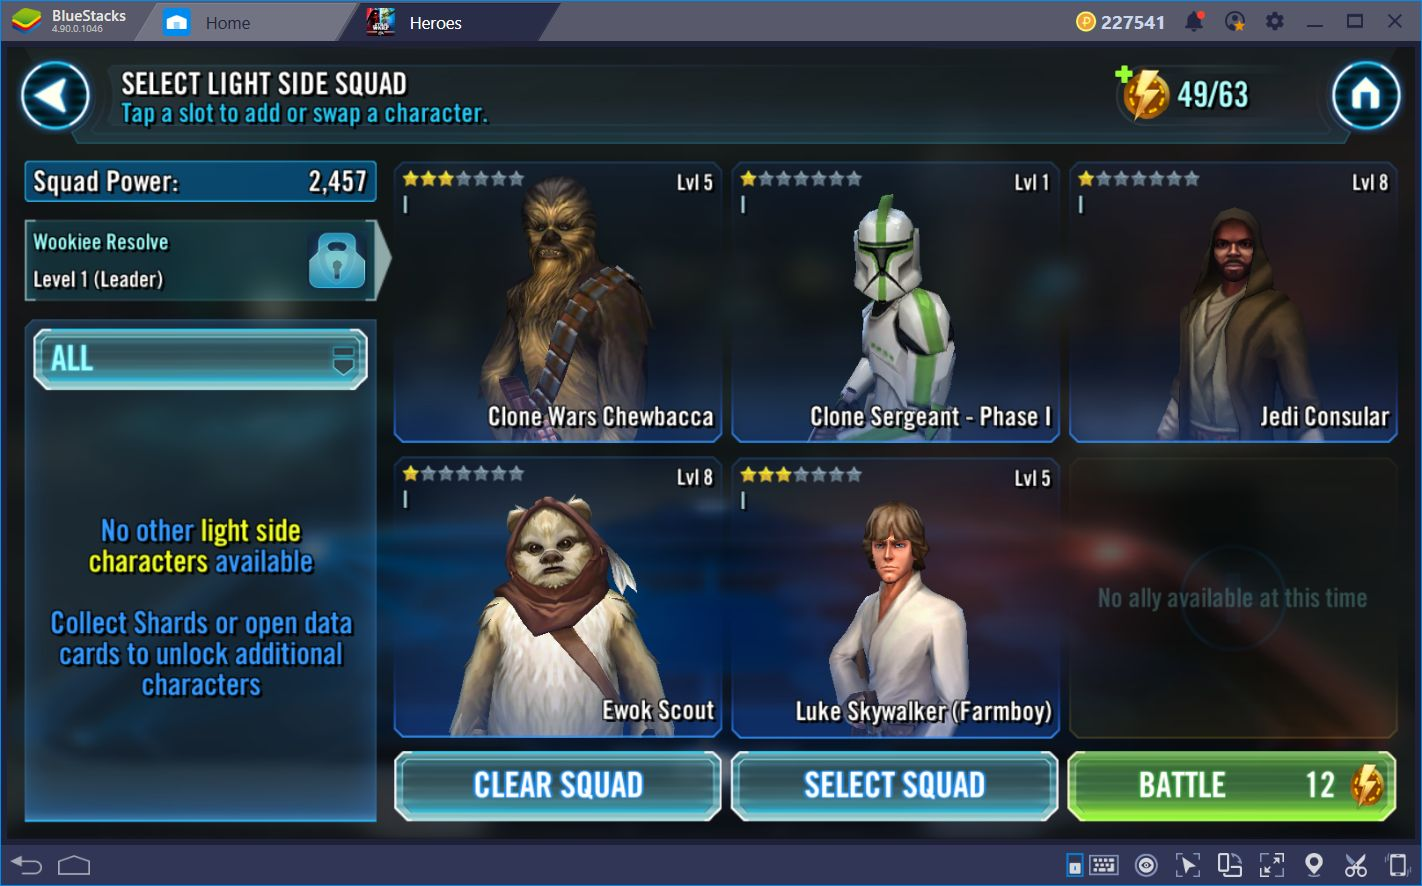 How to Level Up Fast in Star Wars: Galaxy of Heroes